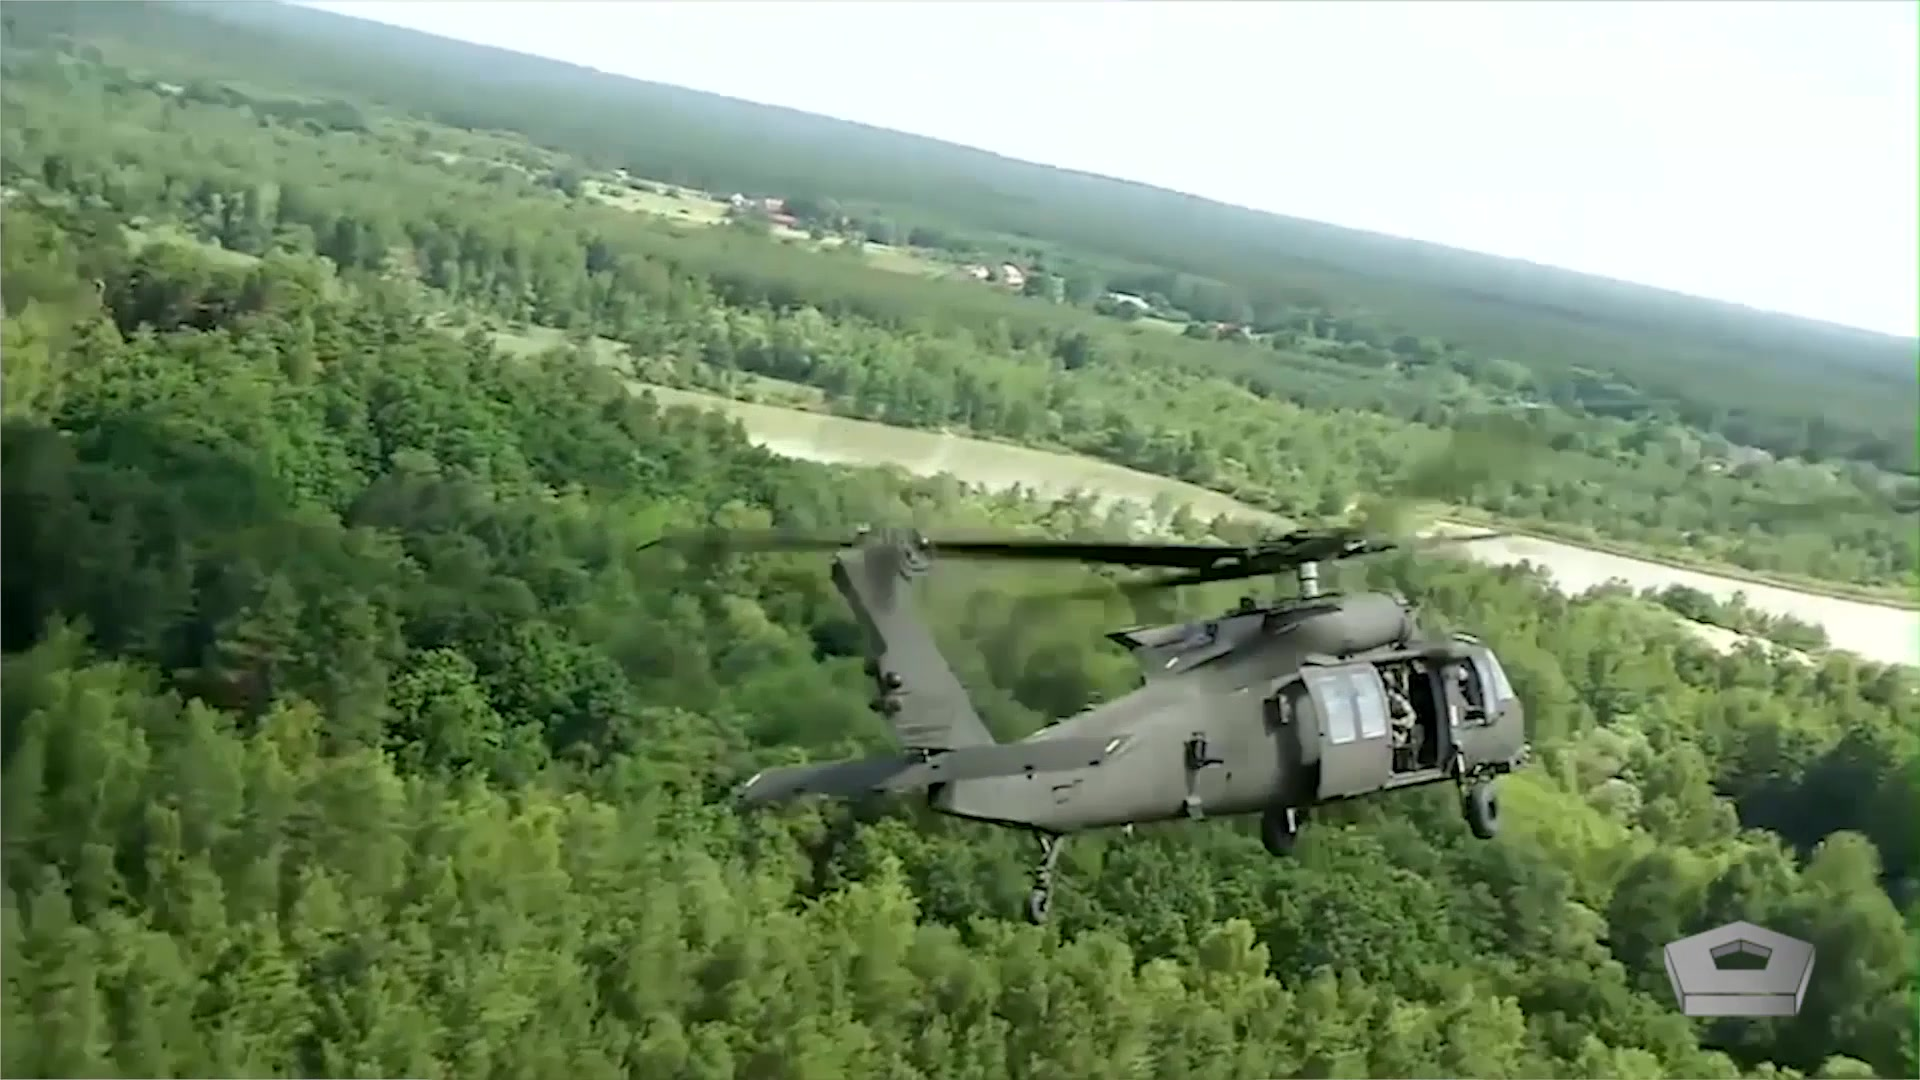 An Army helicopter flies over a forest.